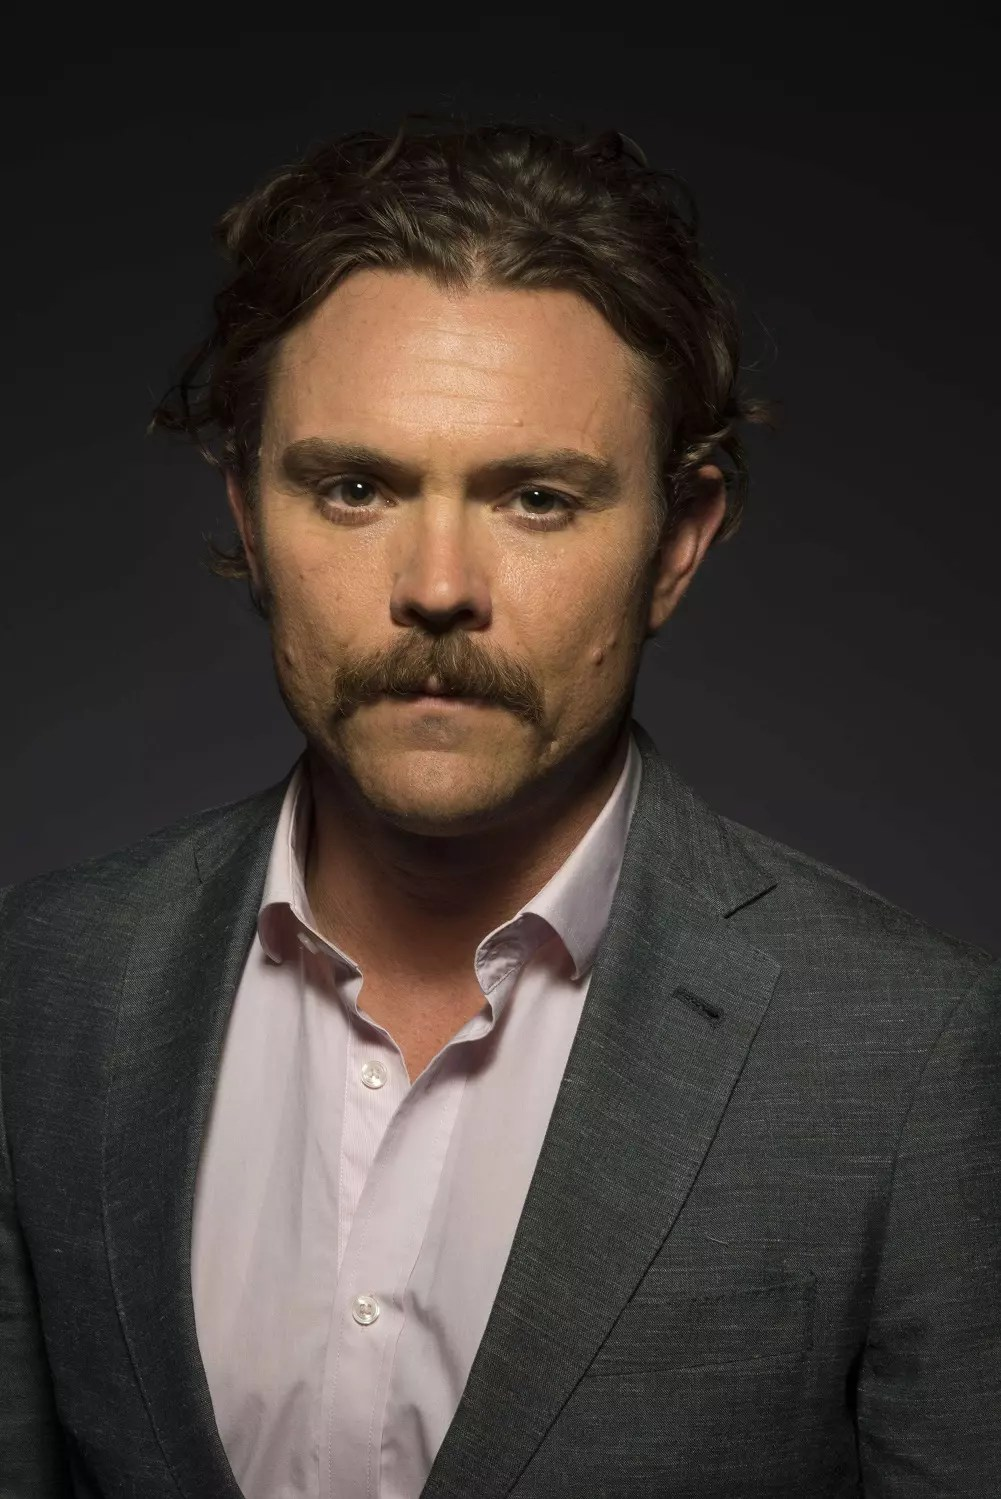 Clayne Crawford Tells 'My Side' of 'Lethal Weapon' On-Set